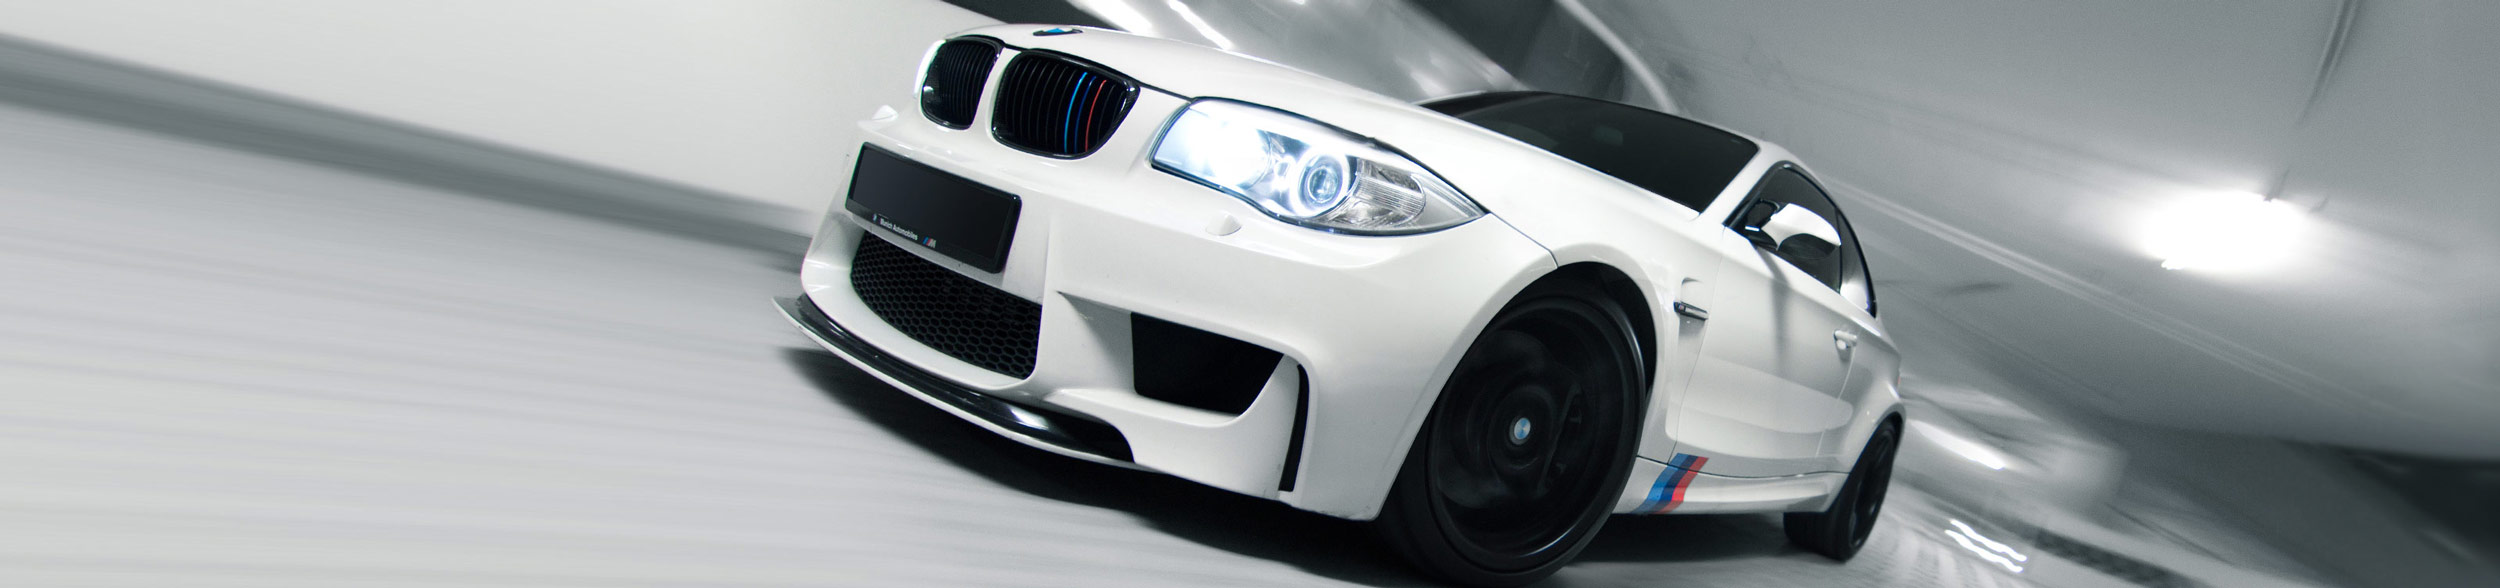 Aftermarket Performance Car and Tuning Parts